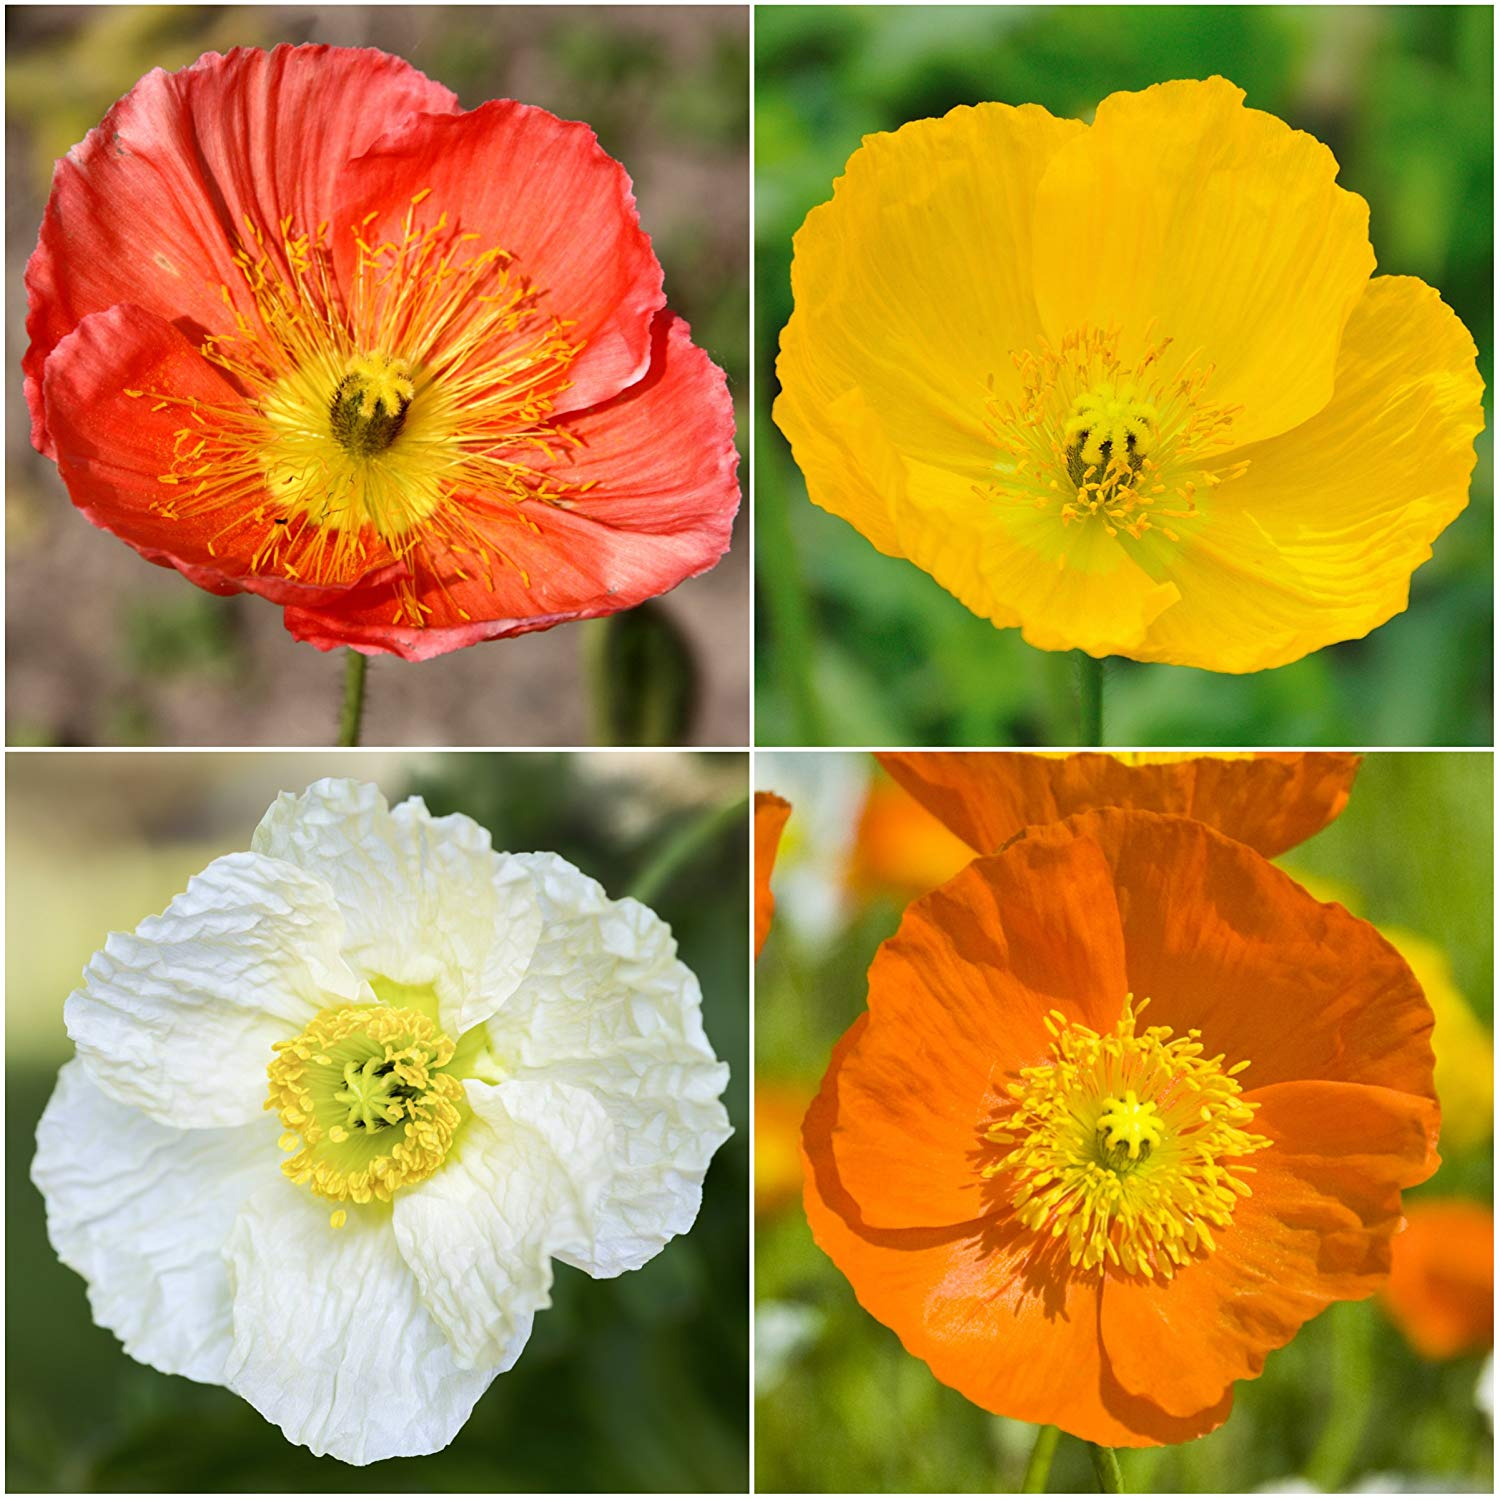 Package of 10,000 Flower Seeds, Iceland Poppy Mixture (Papaver nudicale) Non-GMO Seeds by Seed Needs